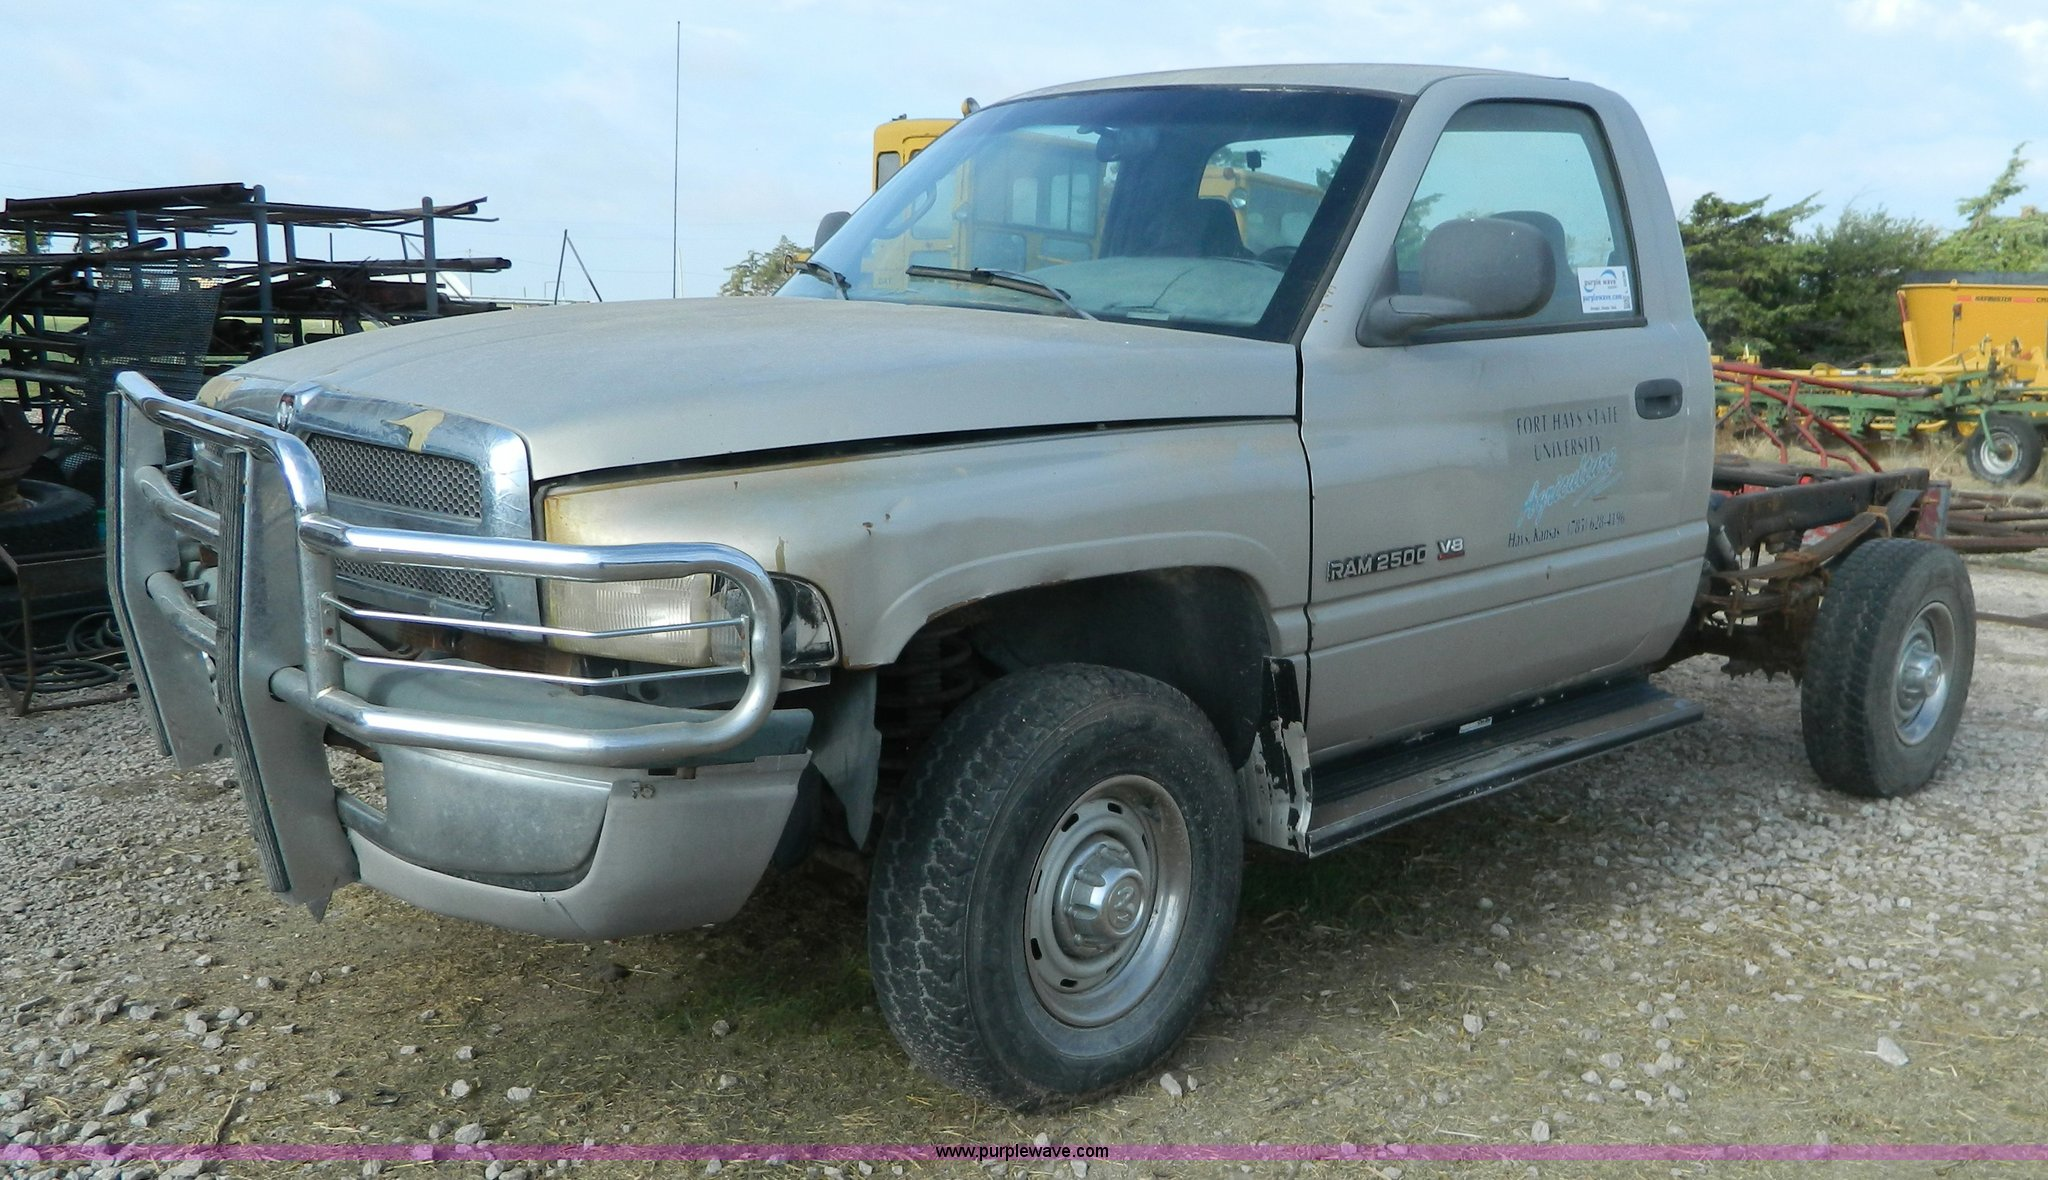 1999 dodge ram 2500 pickup truck cab and chassis item l203 1999 Dodge Ram Interior Color 1999 dodge ram 2500 pickup truck cab and chassis for sale in kansas